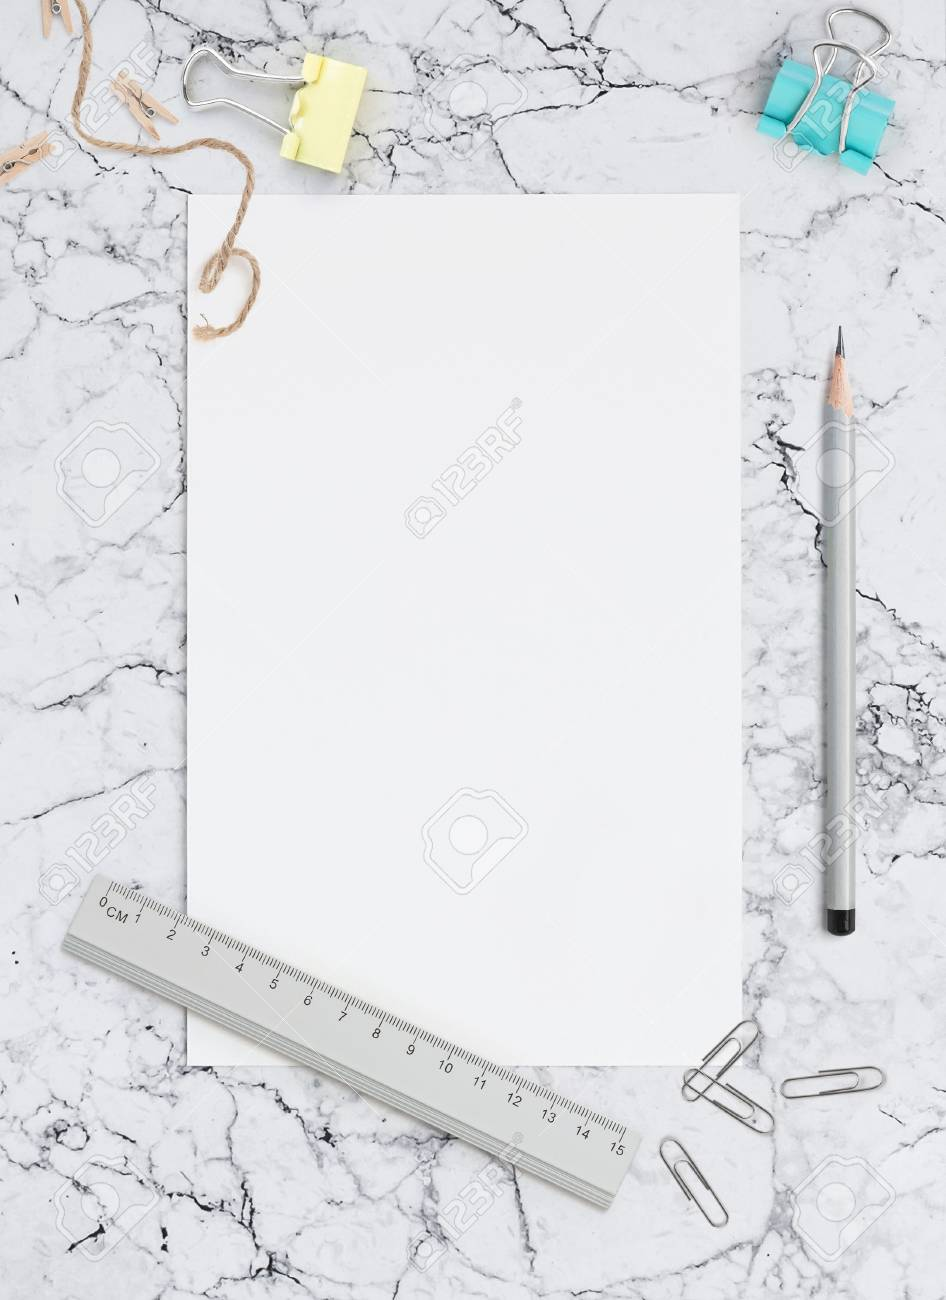 Blank sheet of paper on marble background. Template for calligraphy, letterings, design or all kinds of your art. Mockup for Social networks - 85581155